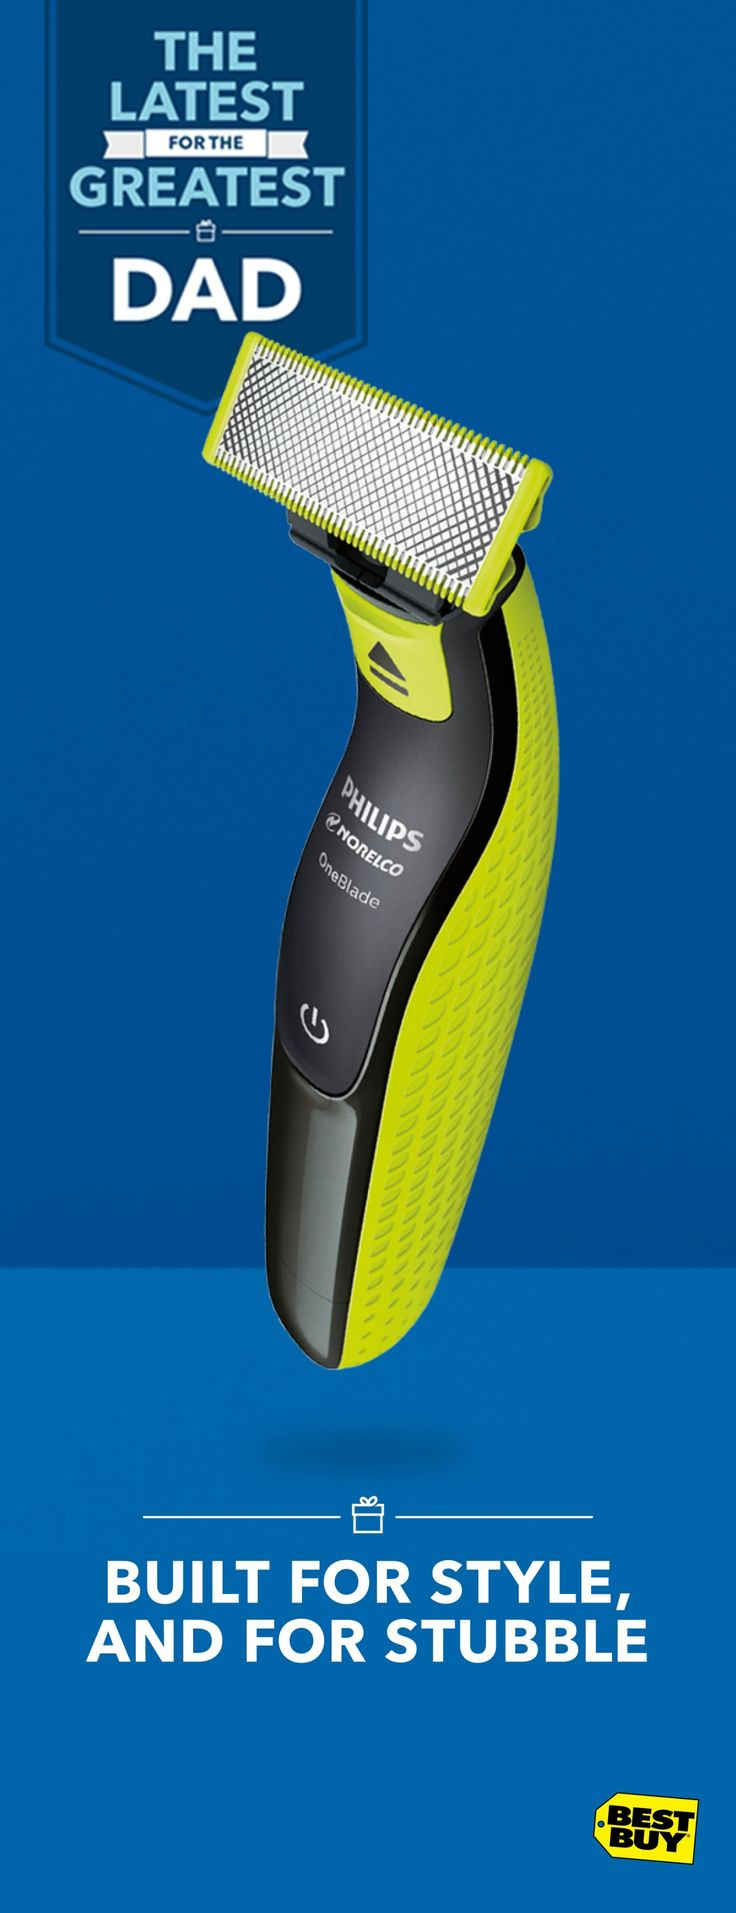 The Philips Norelco OneBlade is no ordinary beard trimmer. Create and shape  moustaches, muttonchops